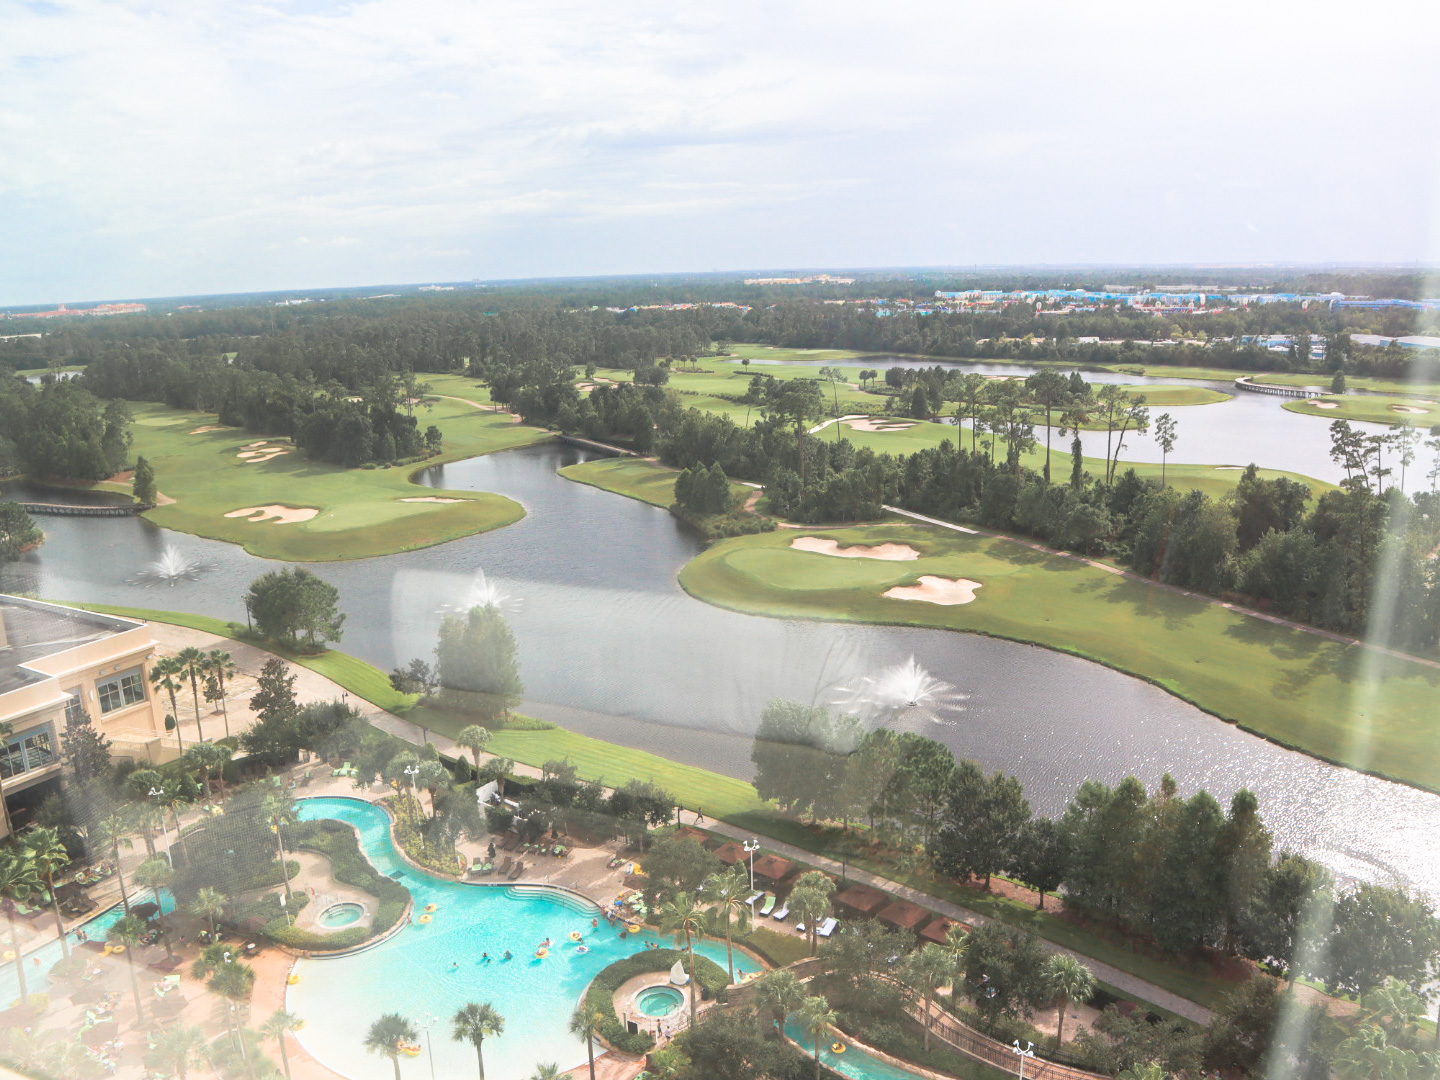 Hilton Bonnet Creek Resort view